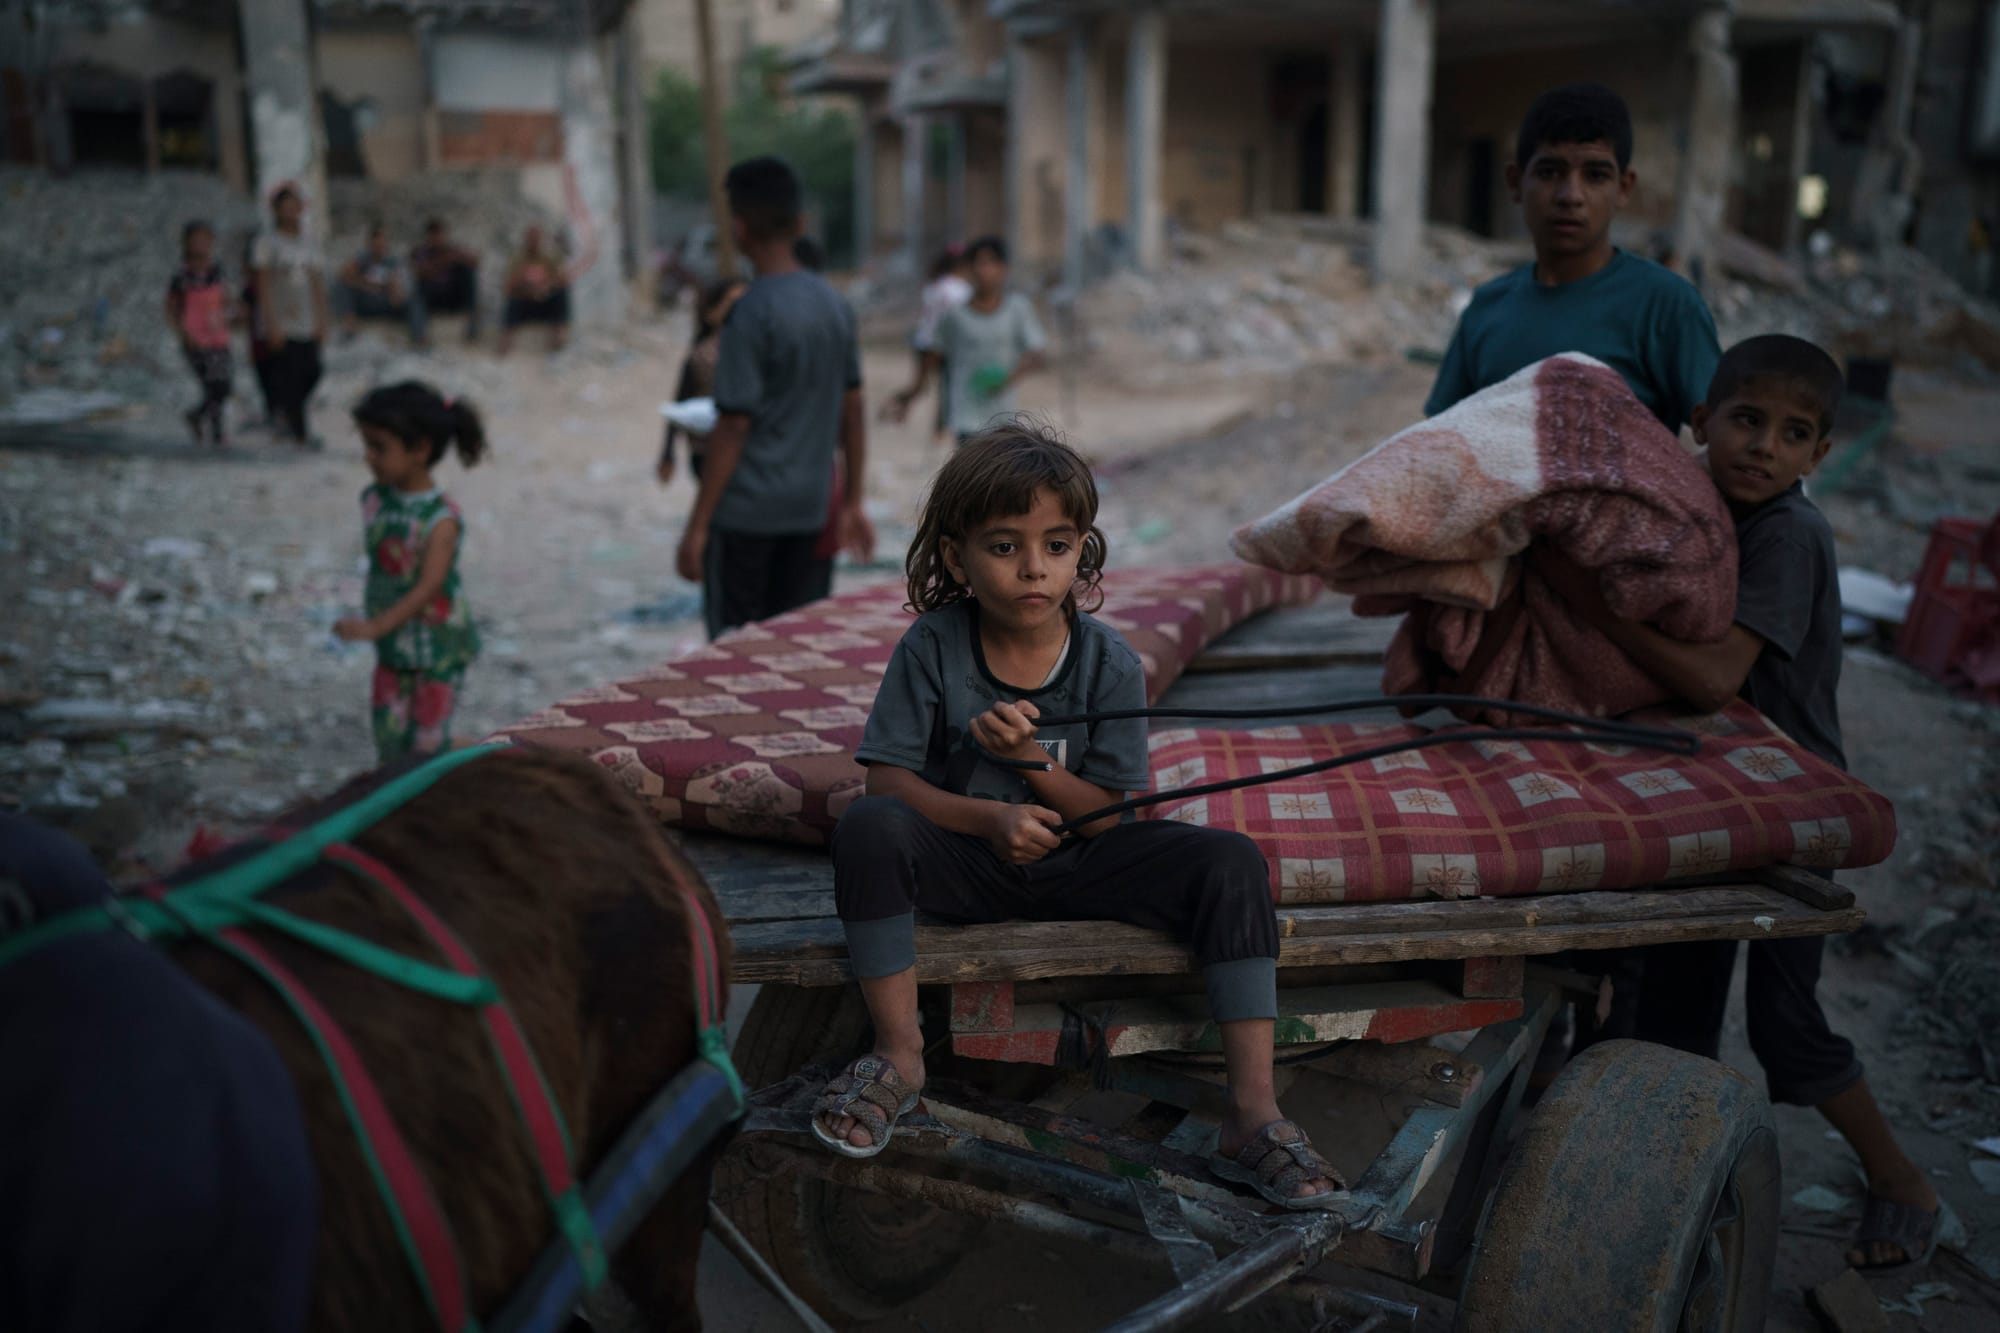 A 7-year-old boy sits on a donkey cart as his brother loads it with belongings from their damaged house.